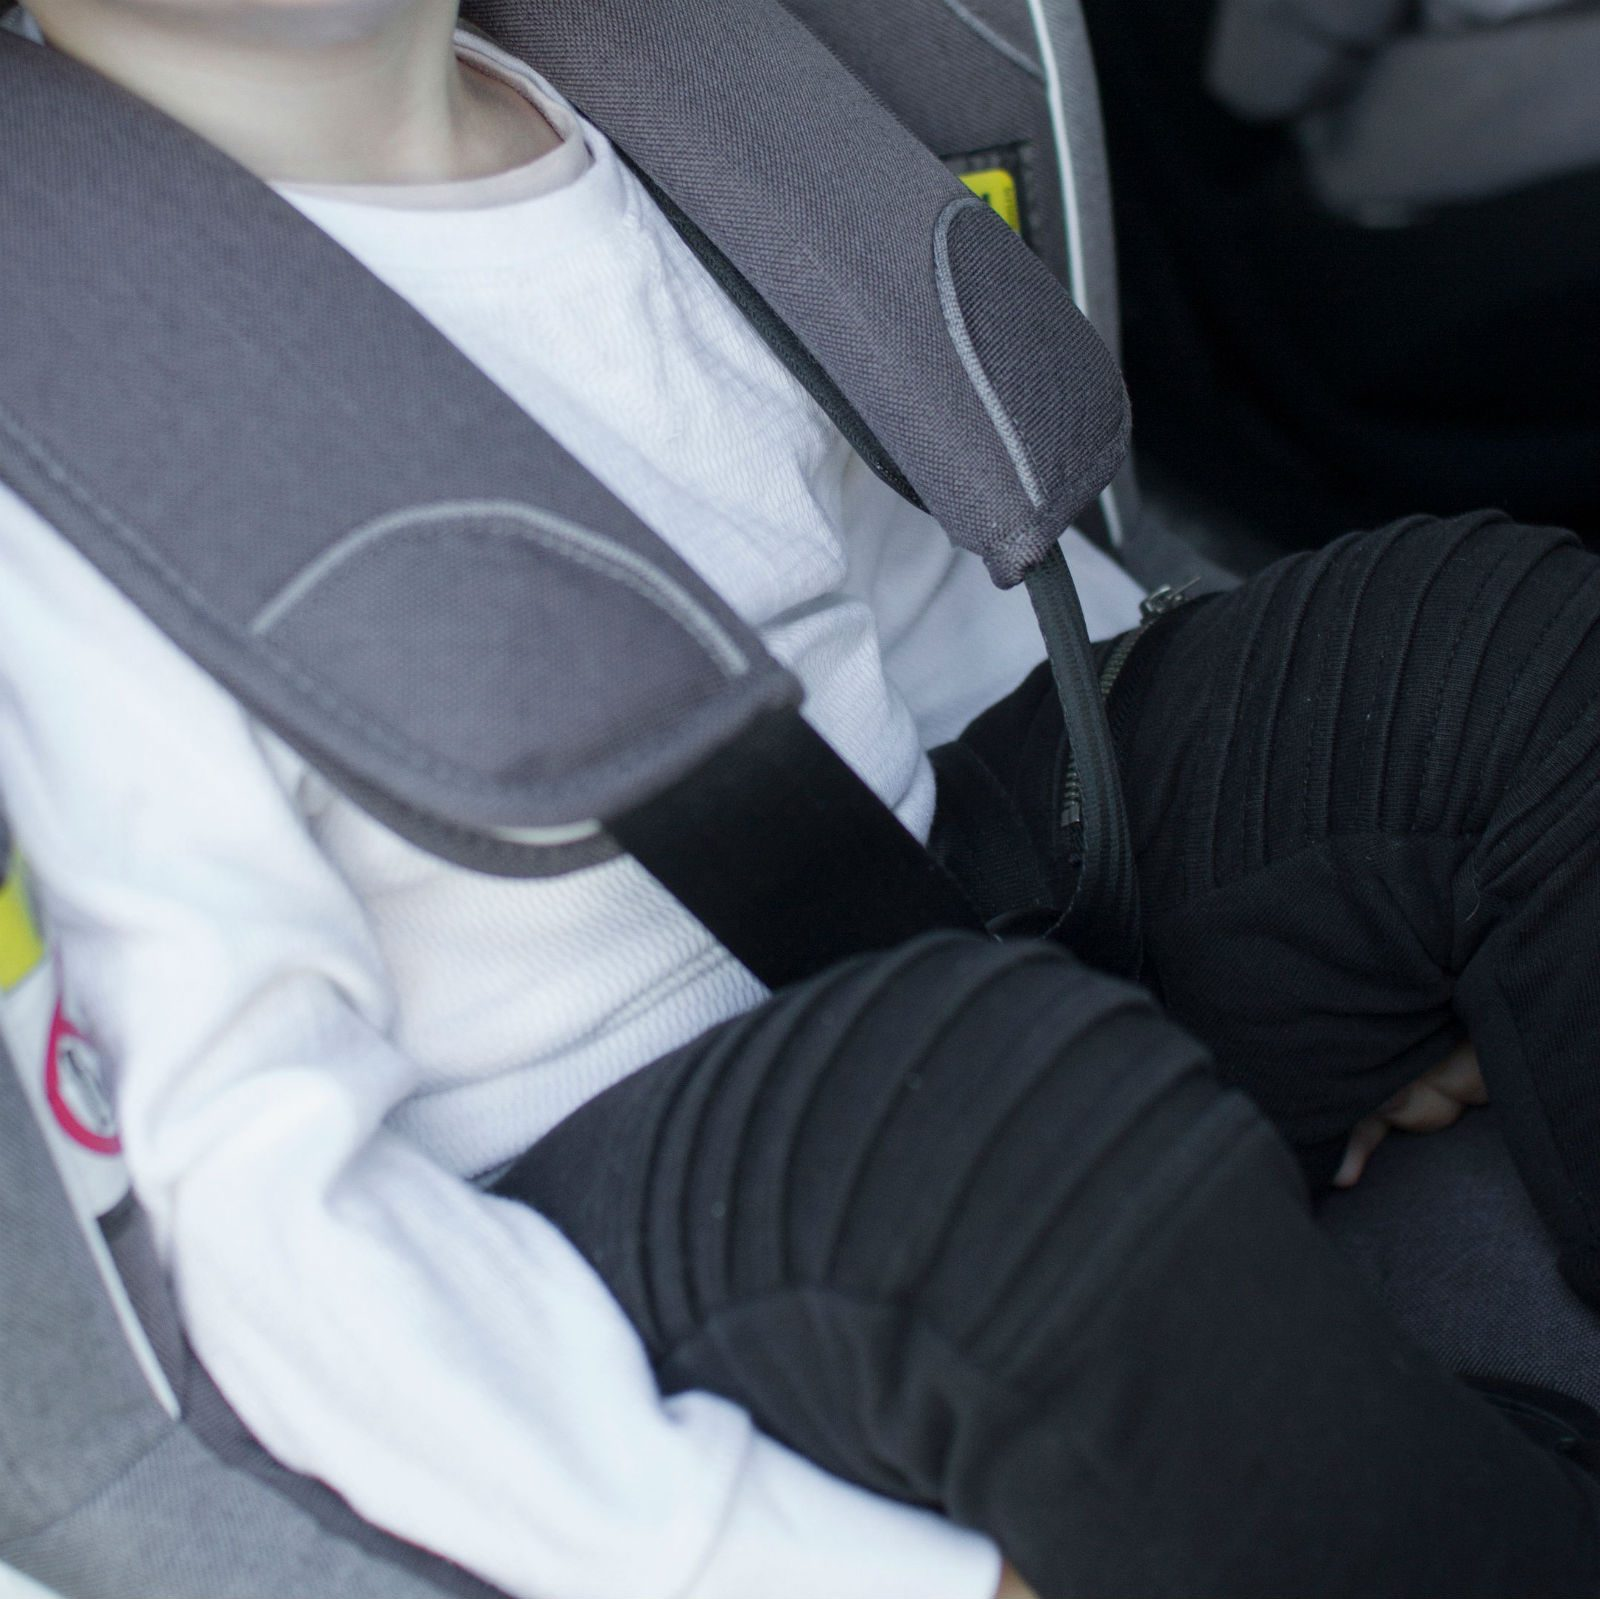 winter jackets in car seats instruction 5